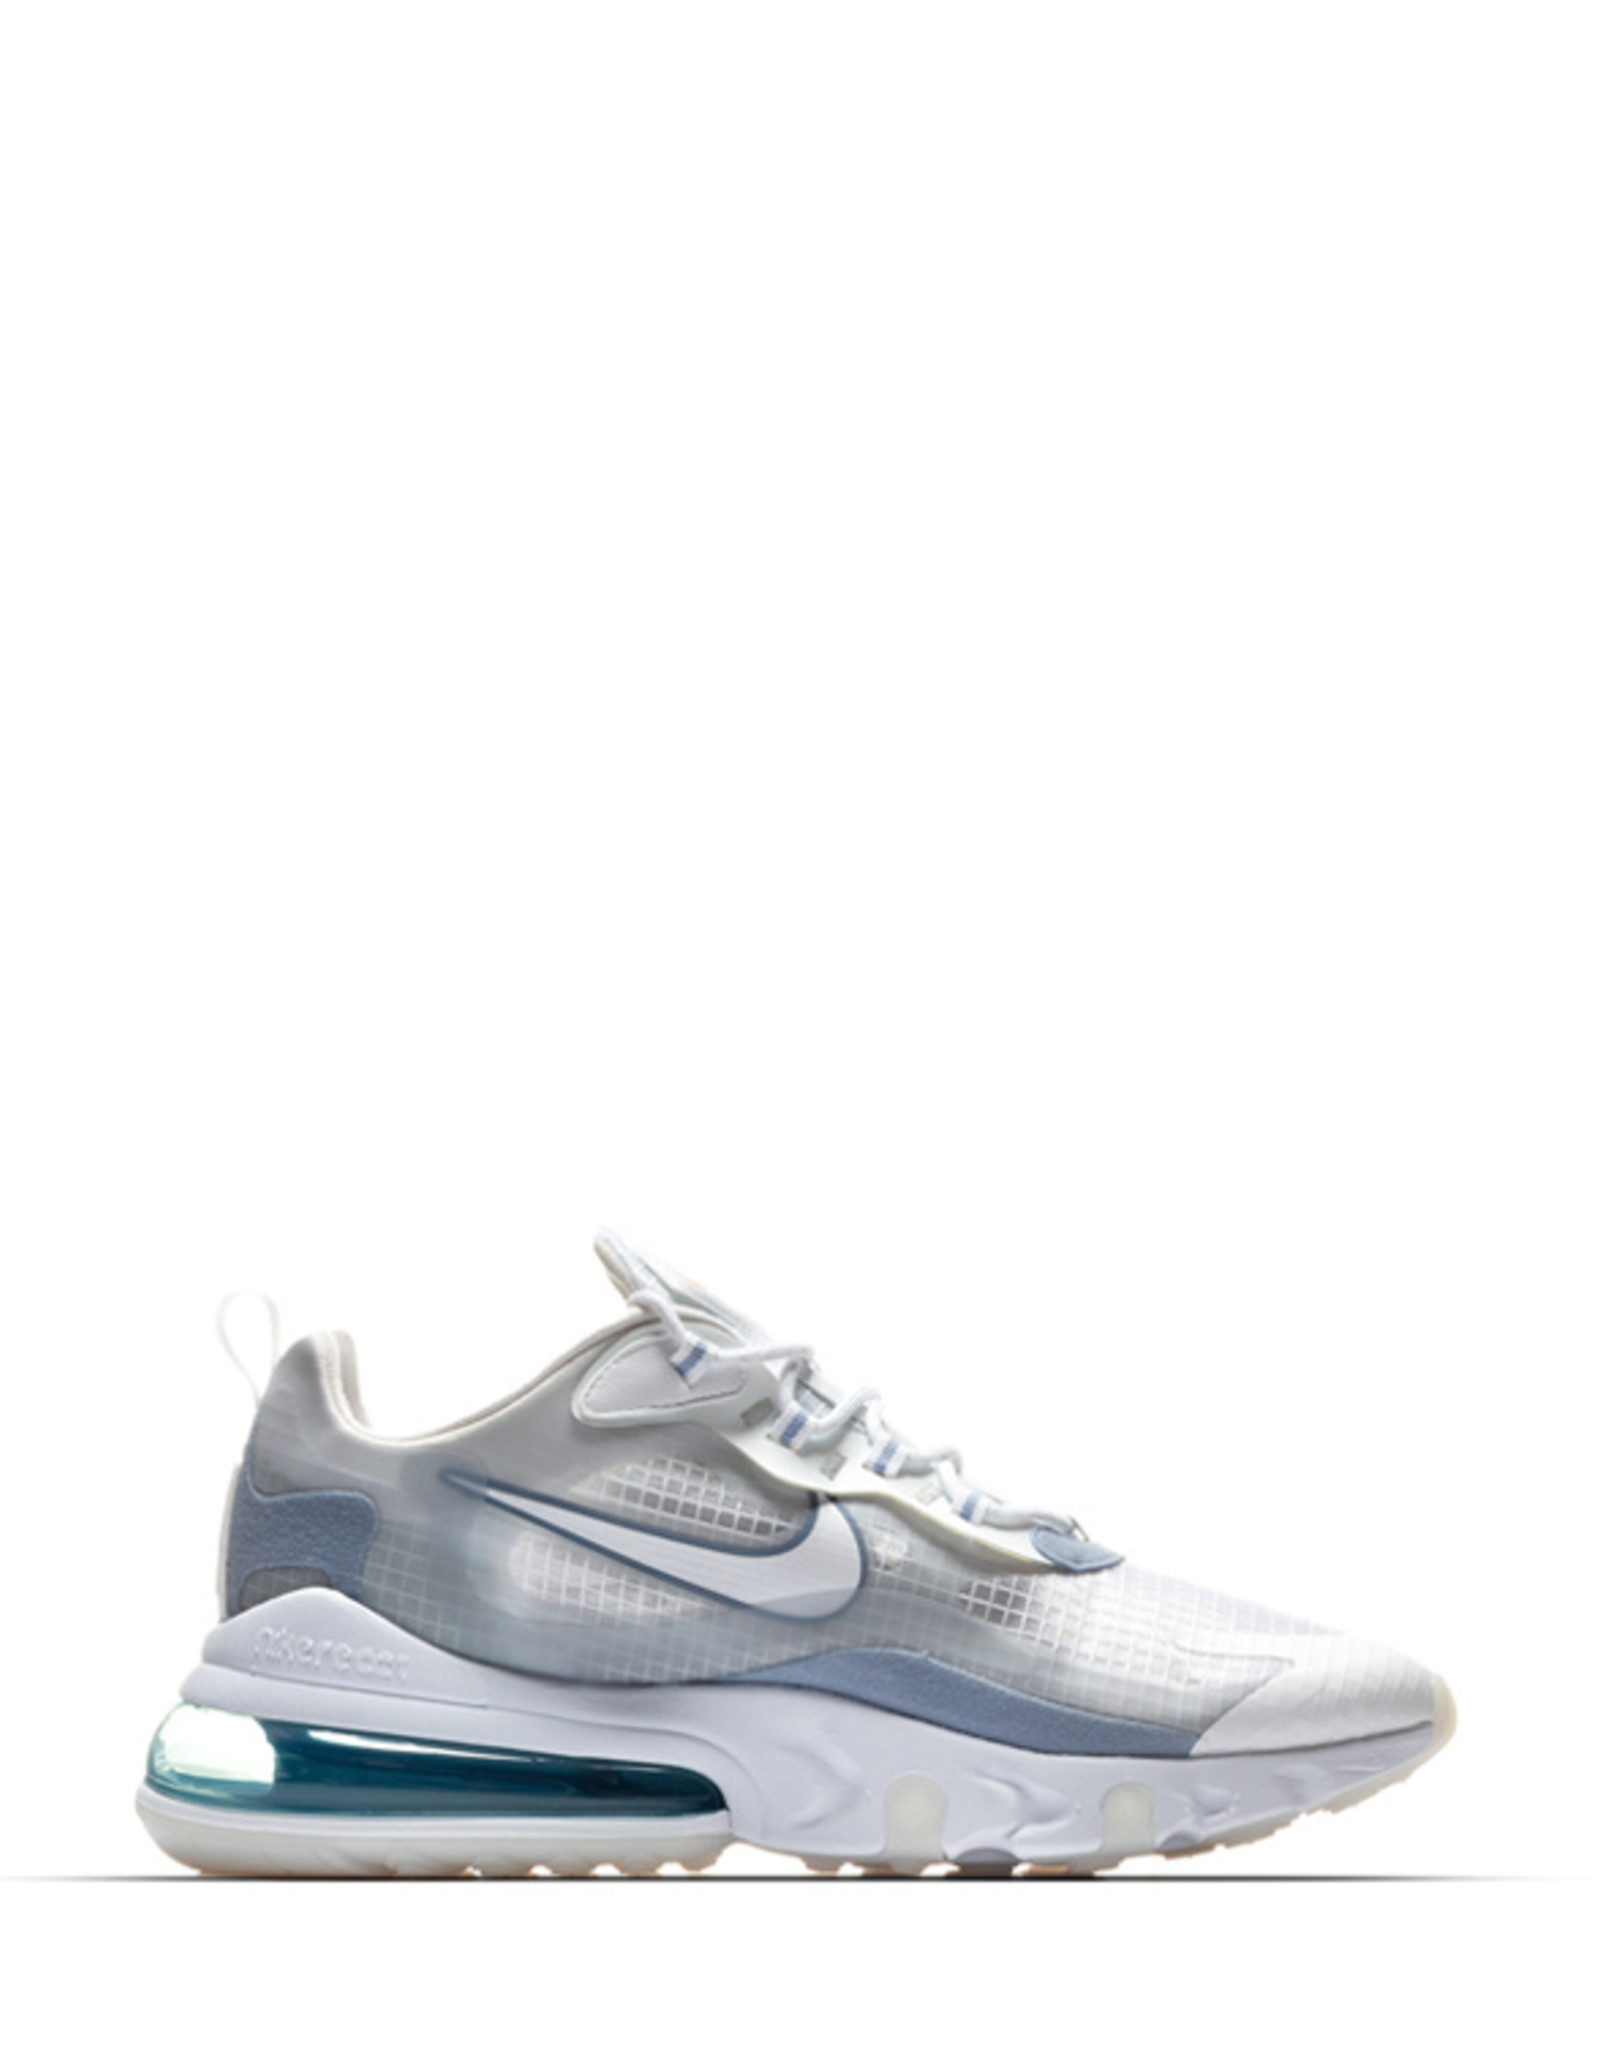 NIKE AIR MAX 270 REACT SE PURE PLATINUM